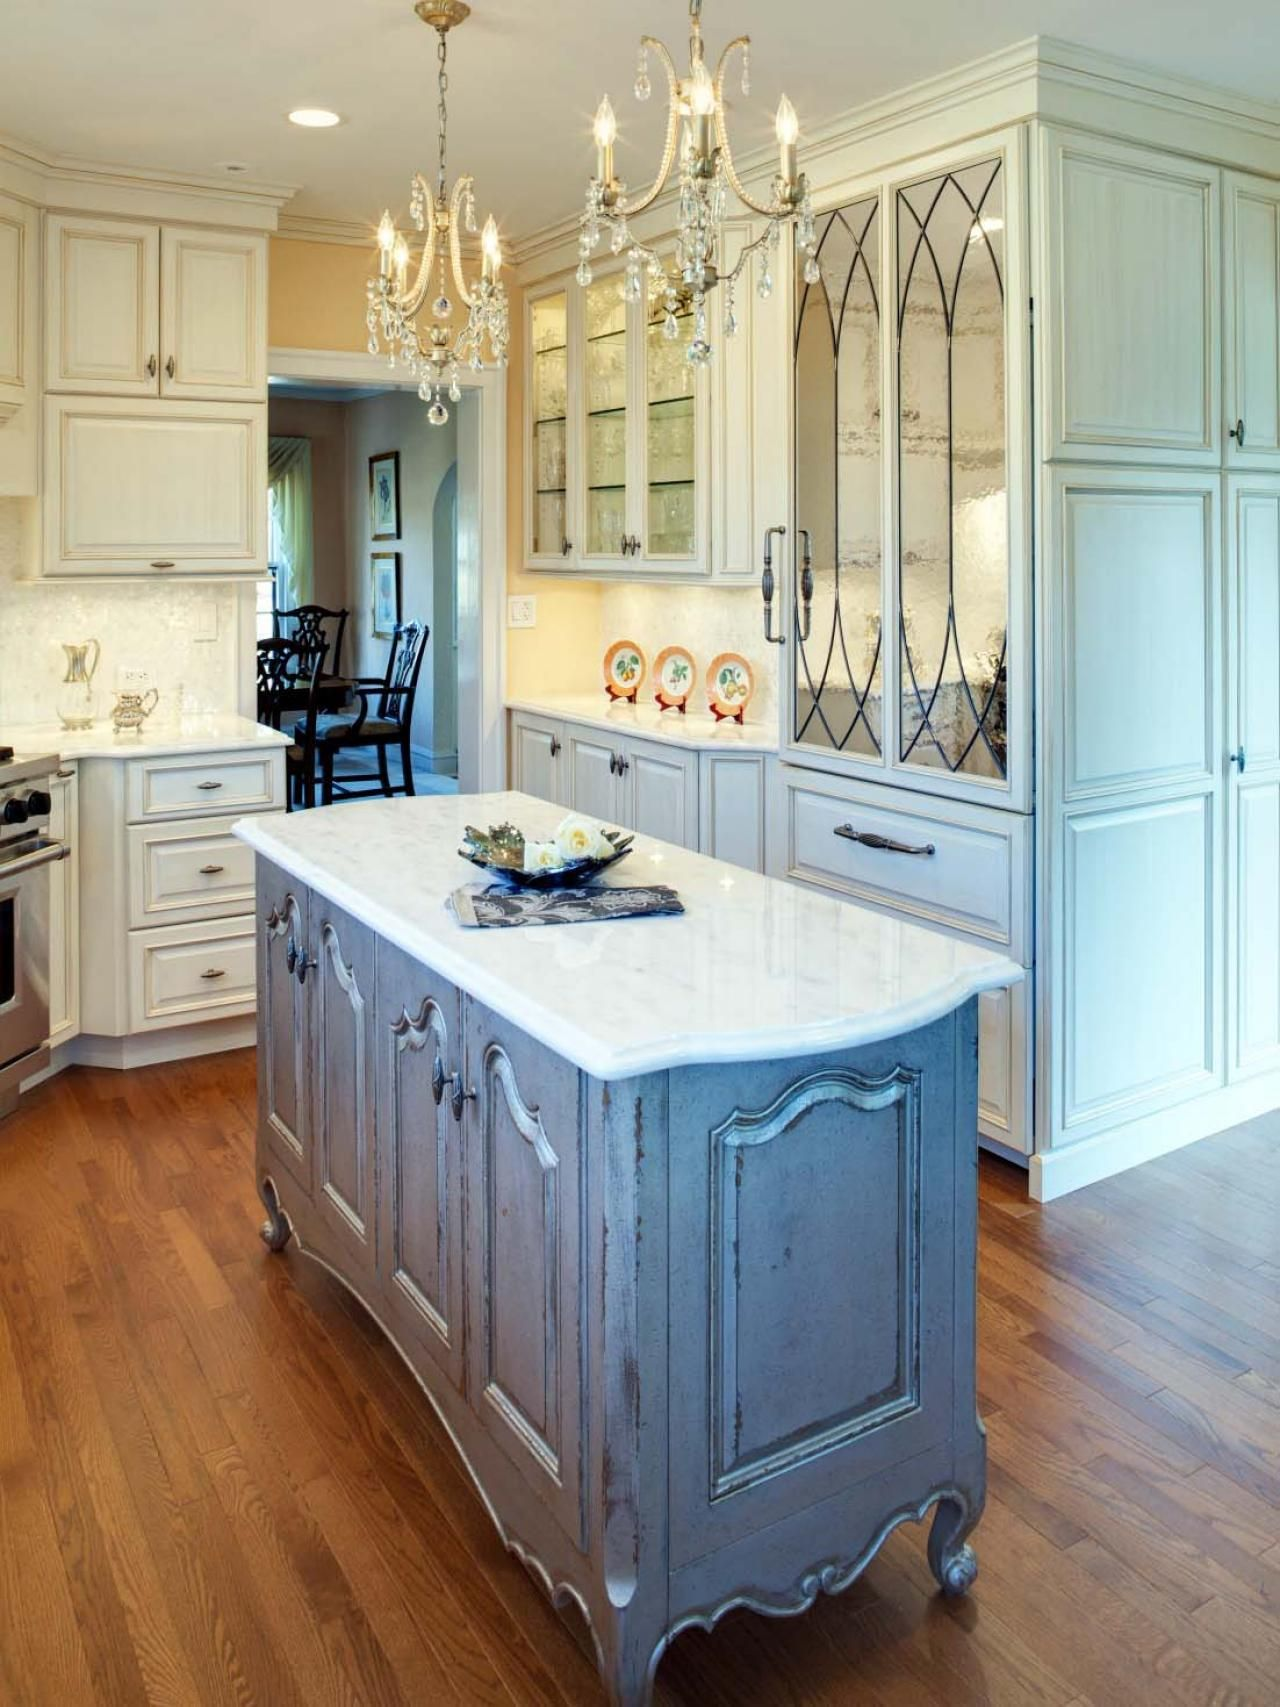 Top Kitchen Design Styles: Pictures, Tips, Ideas and Options | Casa ...